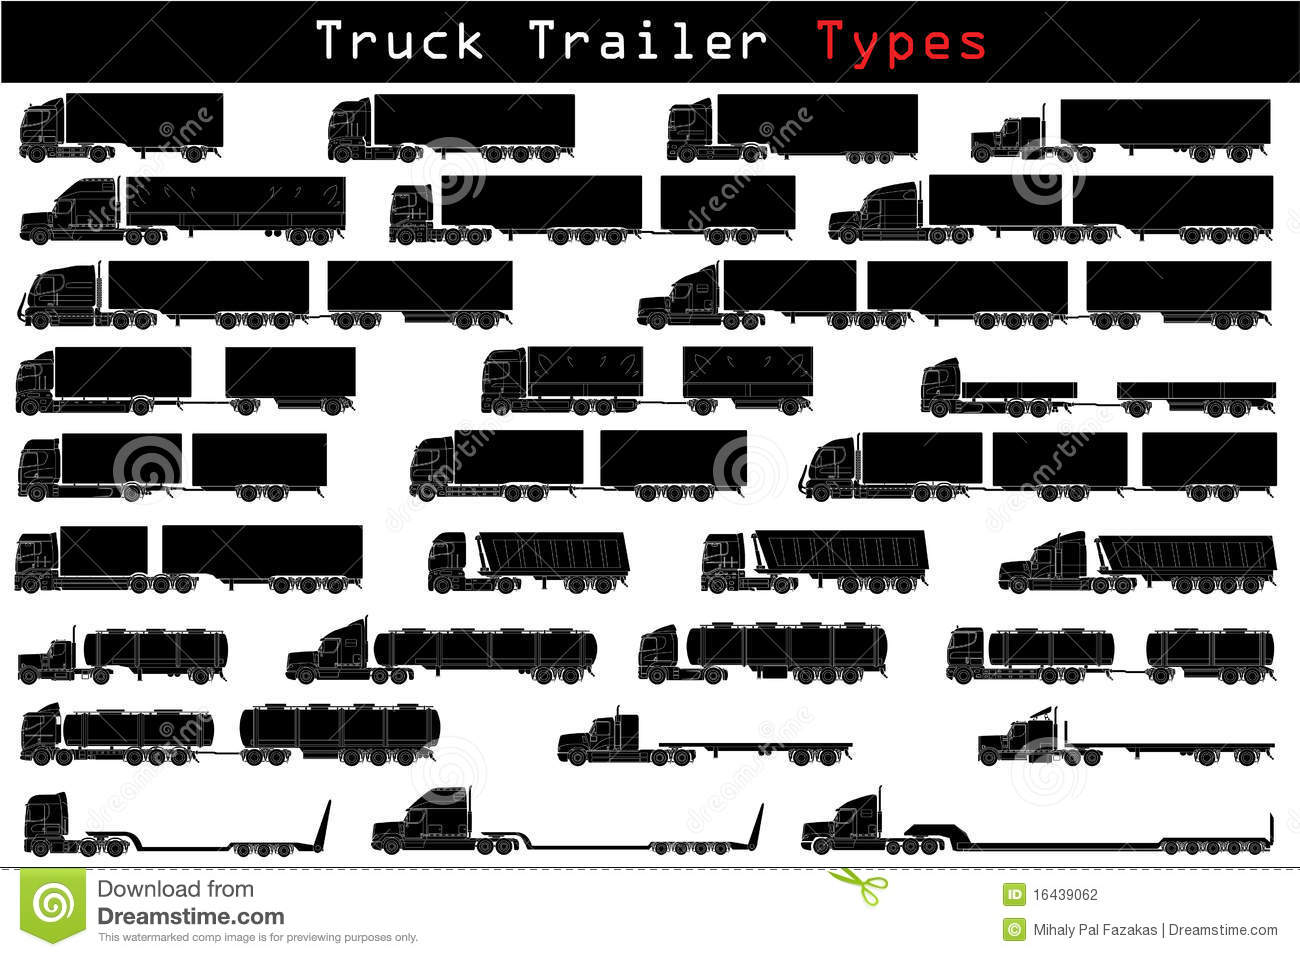 Types Of Tractor Trailers : Truck trailer types stock vector illustration of freight